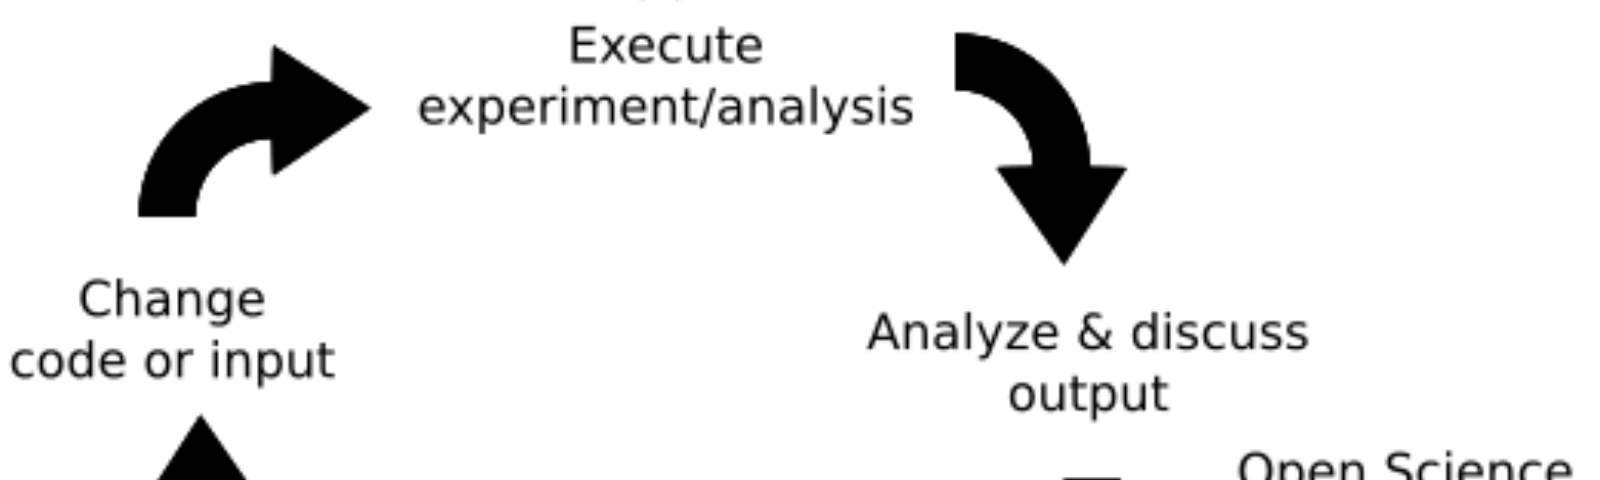 Cycle: Execute experiment/analysis with popper; analyze and discuss output uploaded to Open Science Framework; draw conclusions in your lab journal; change code or input; execute again…